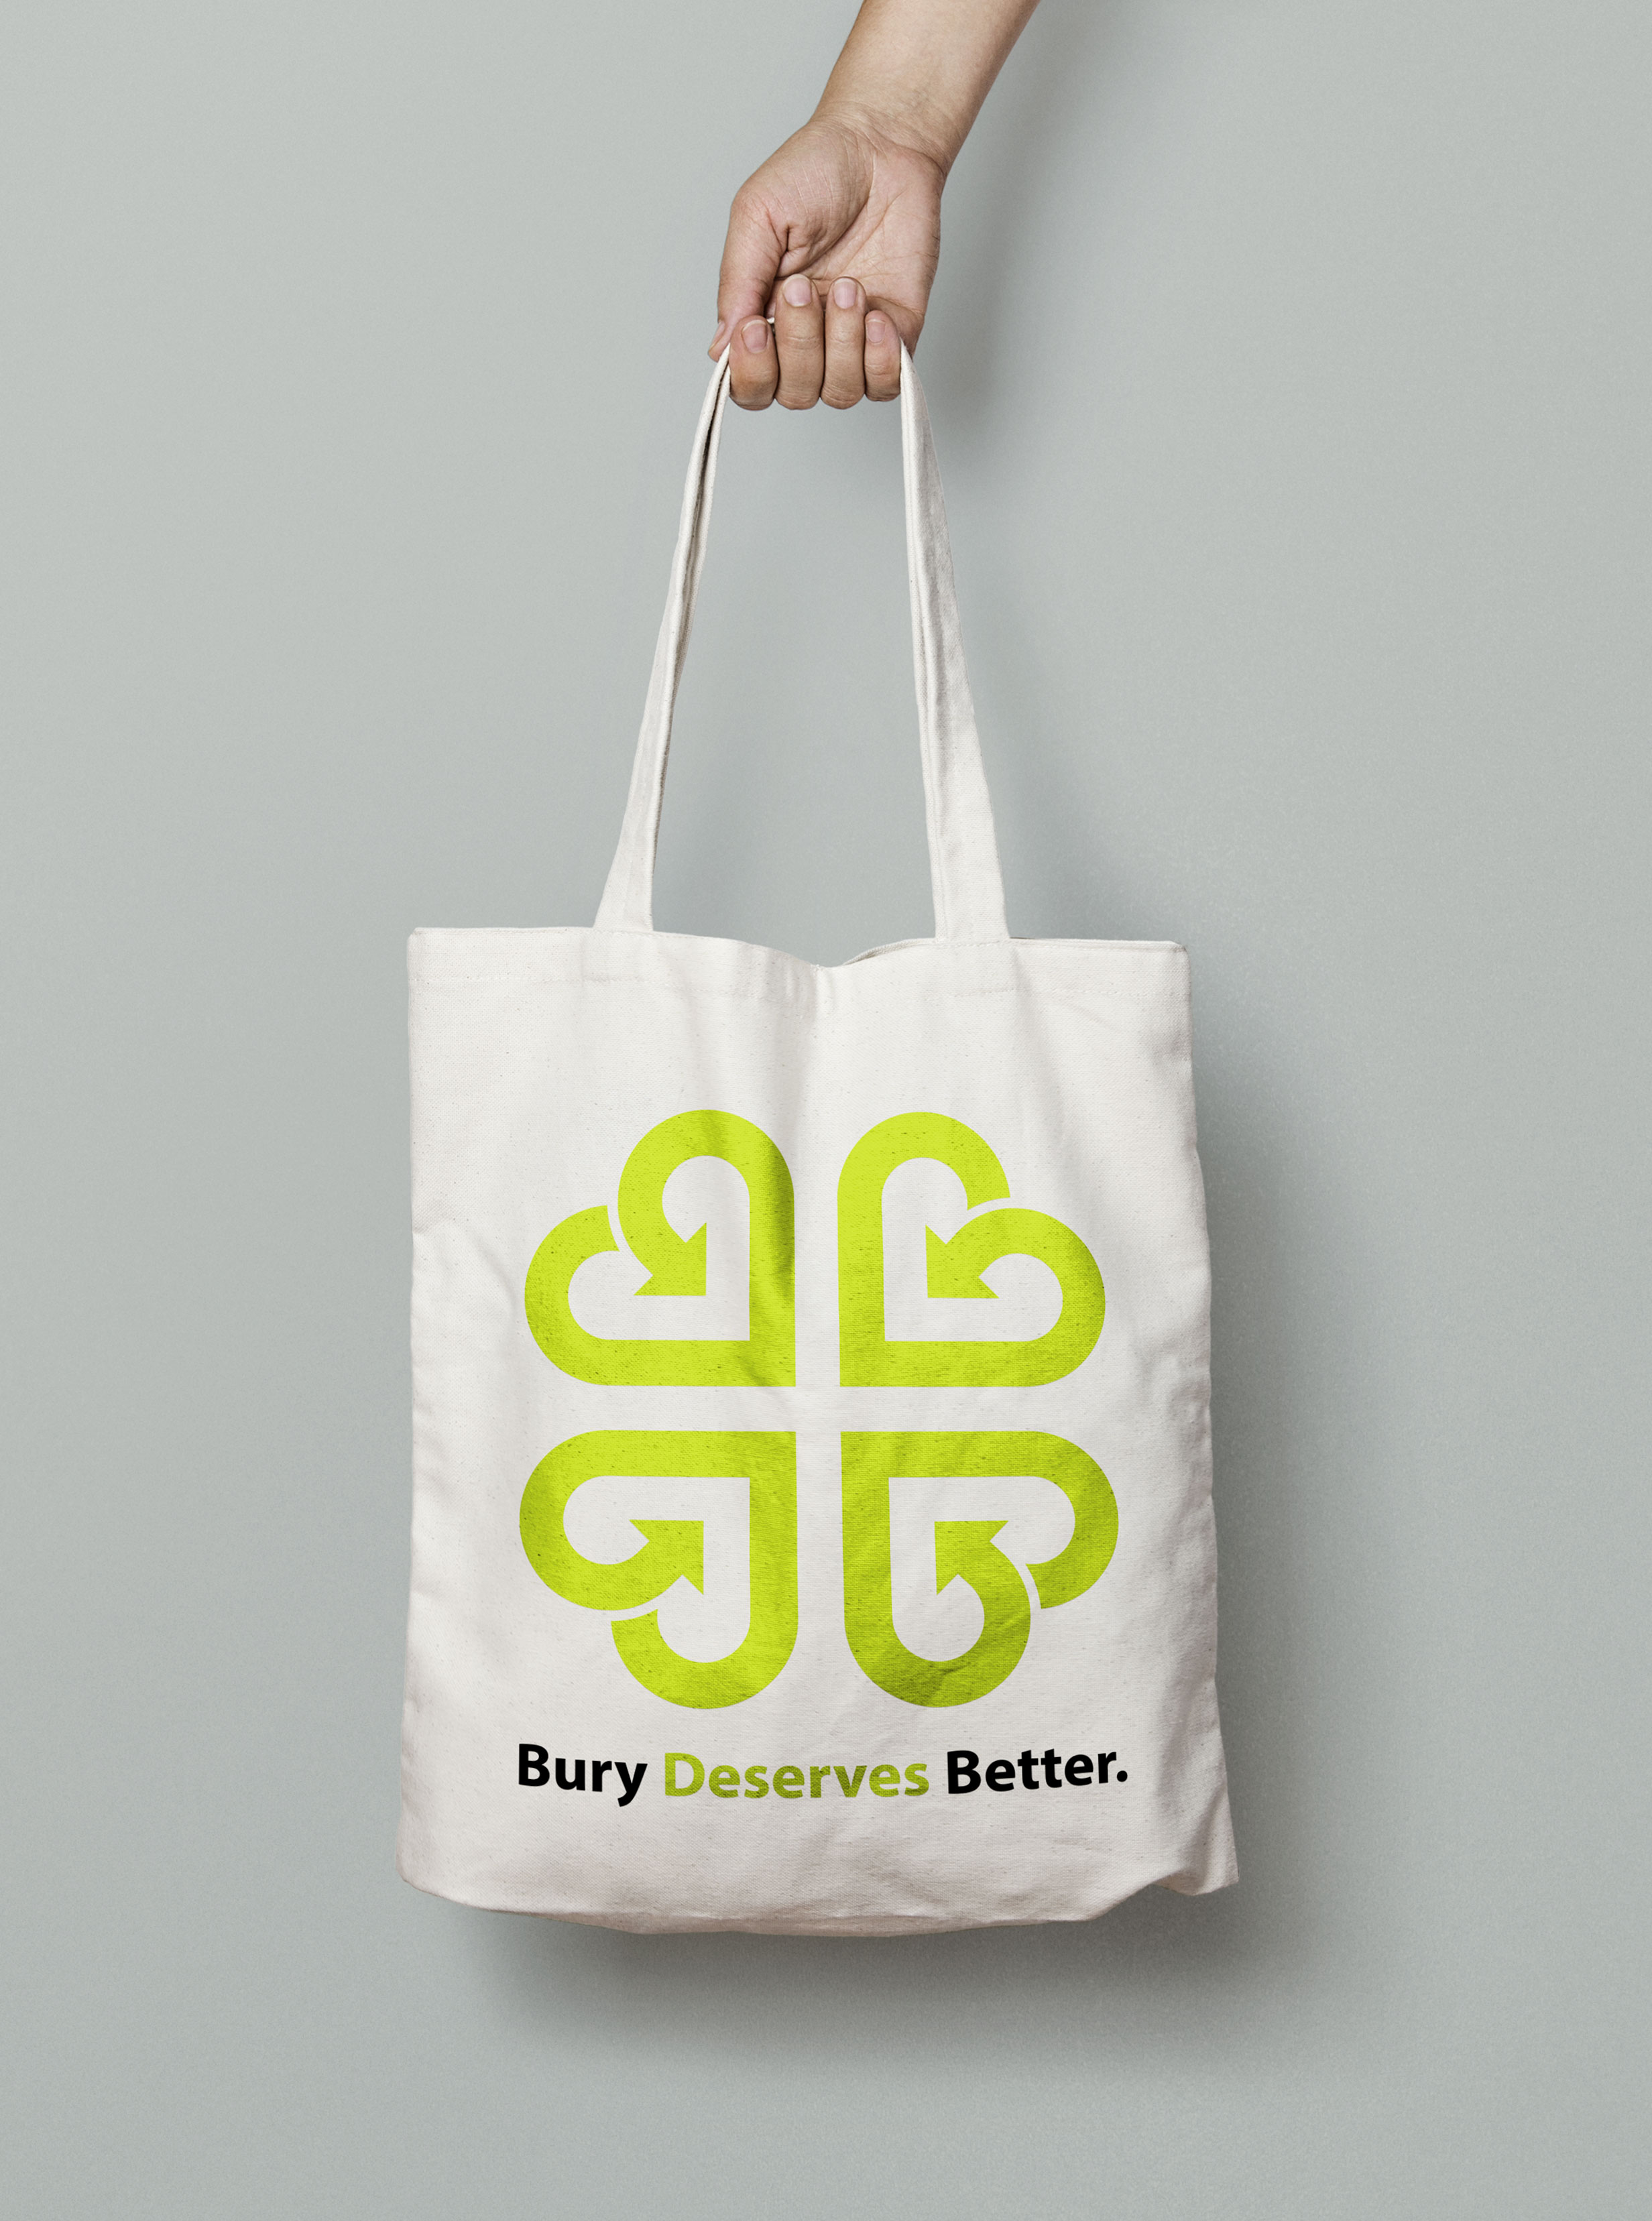 Bury Deserves Better tote bag